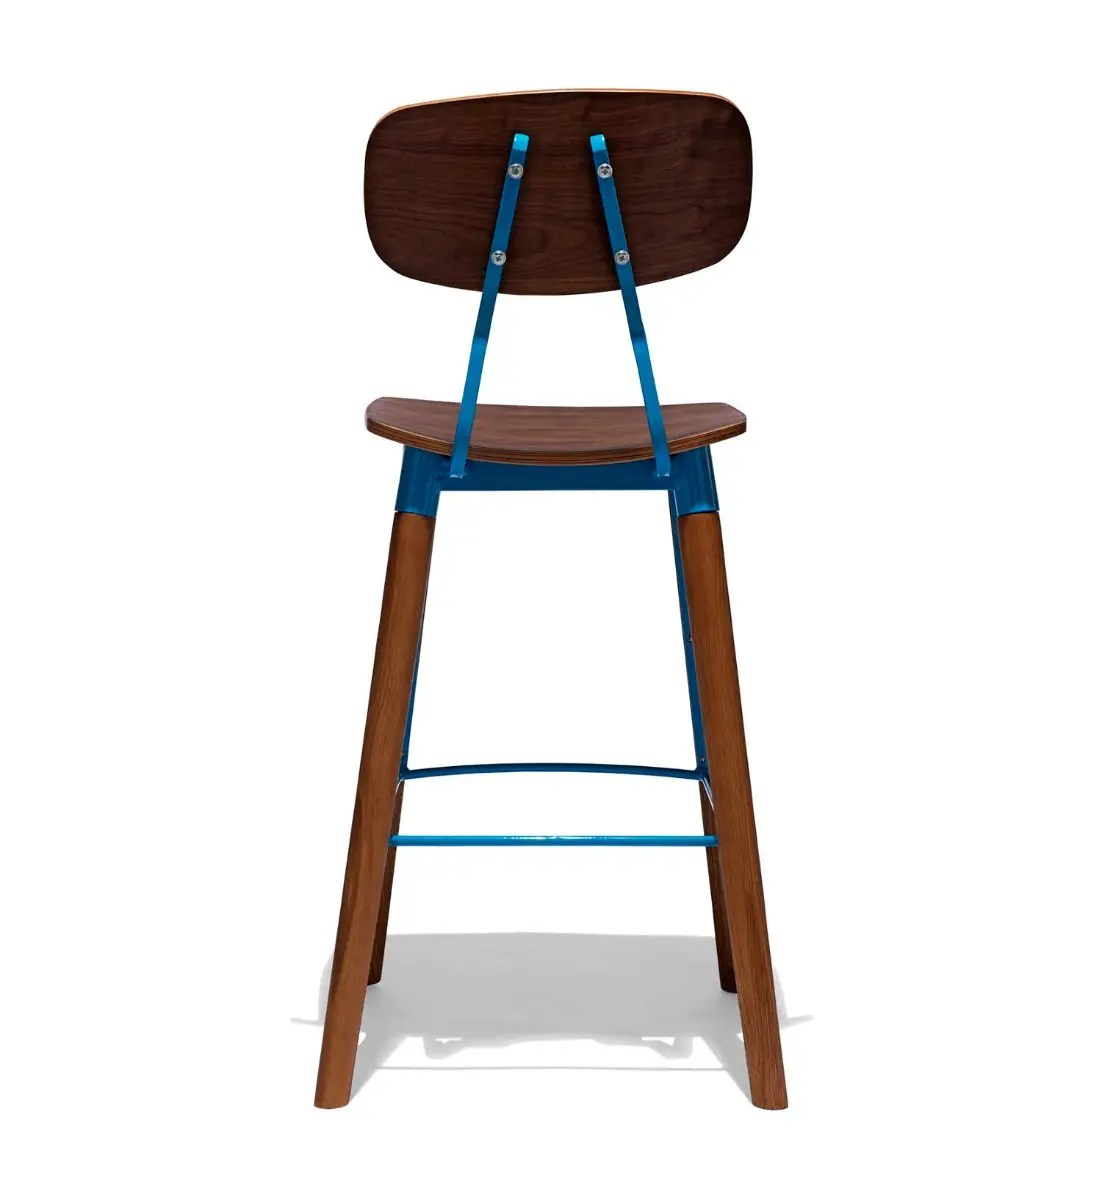 Colorful Bar Stools With Backs Colorful Metal Bar Stools Colored Steel Frame Counter Stools